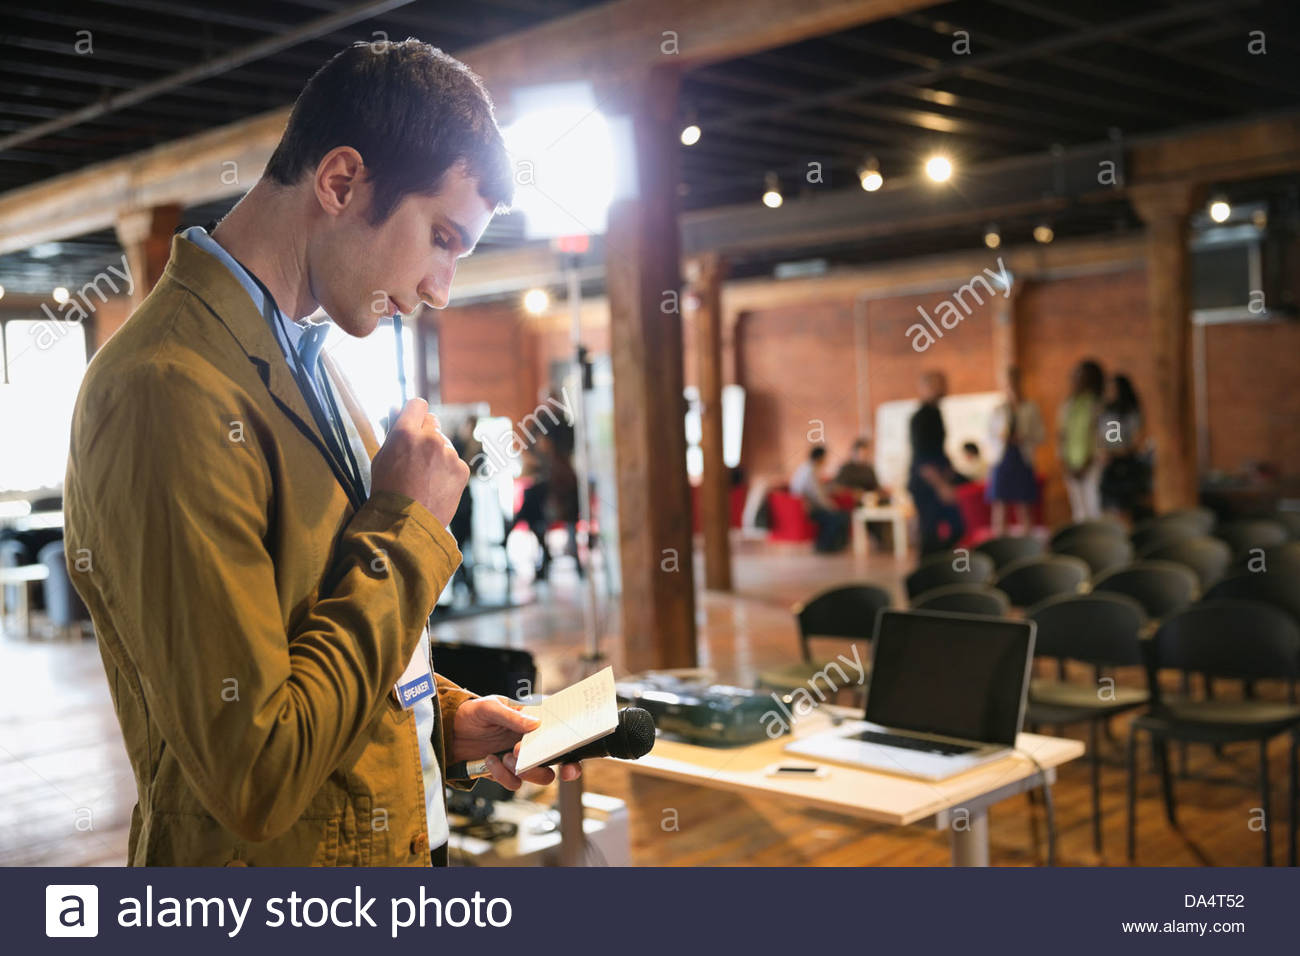 Entrepreneur preparing for presentation in conference room - Stock Image